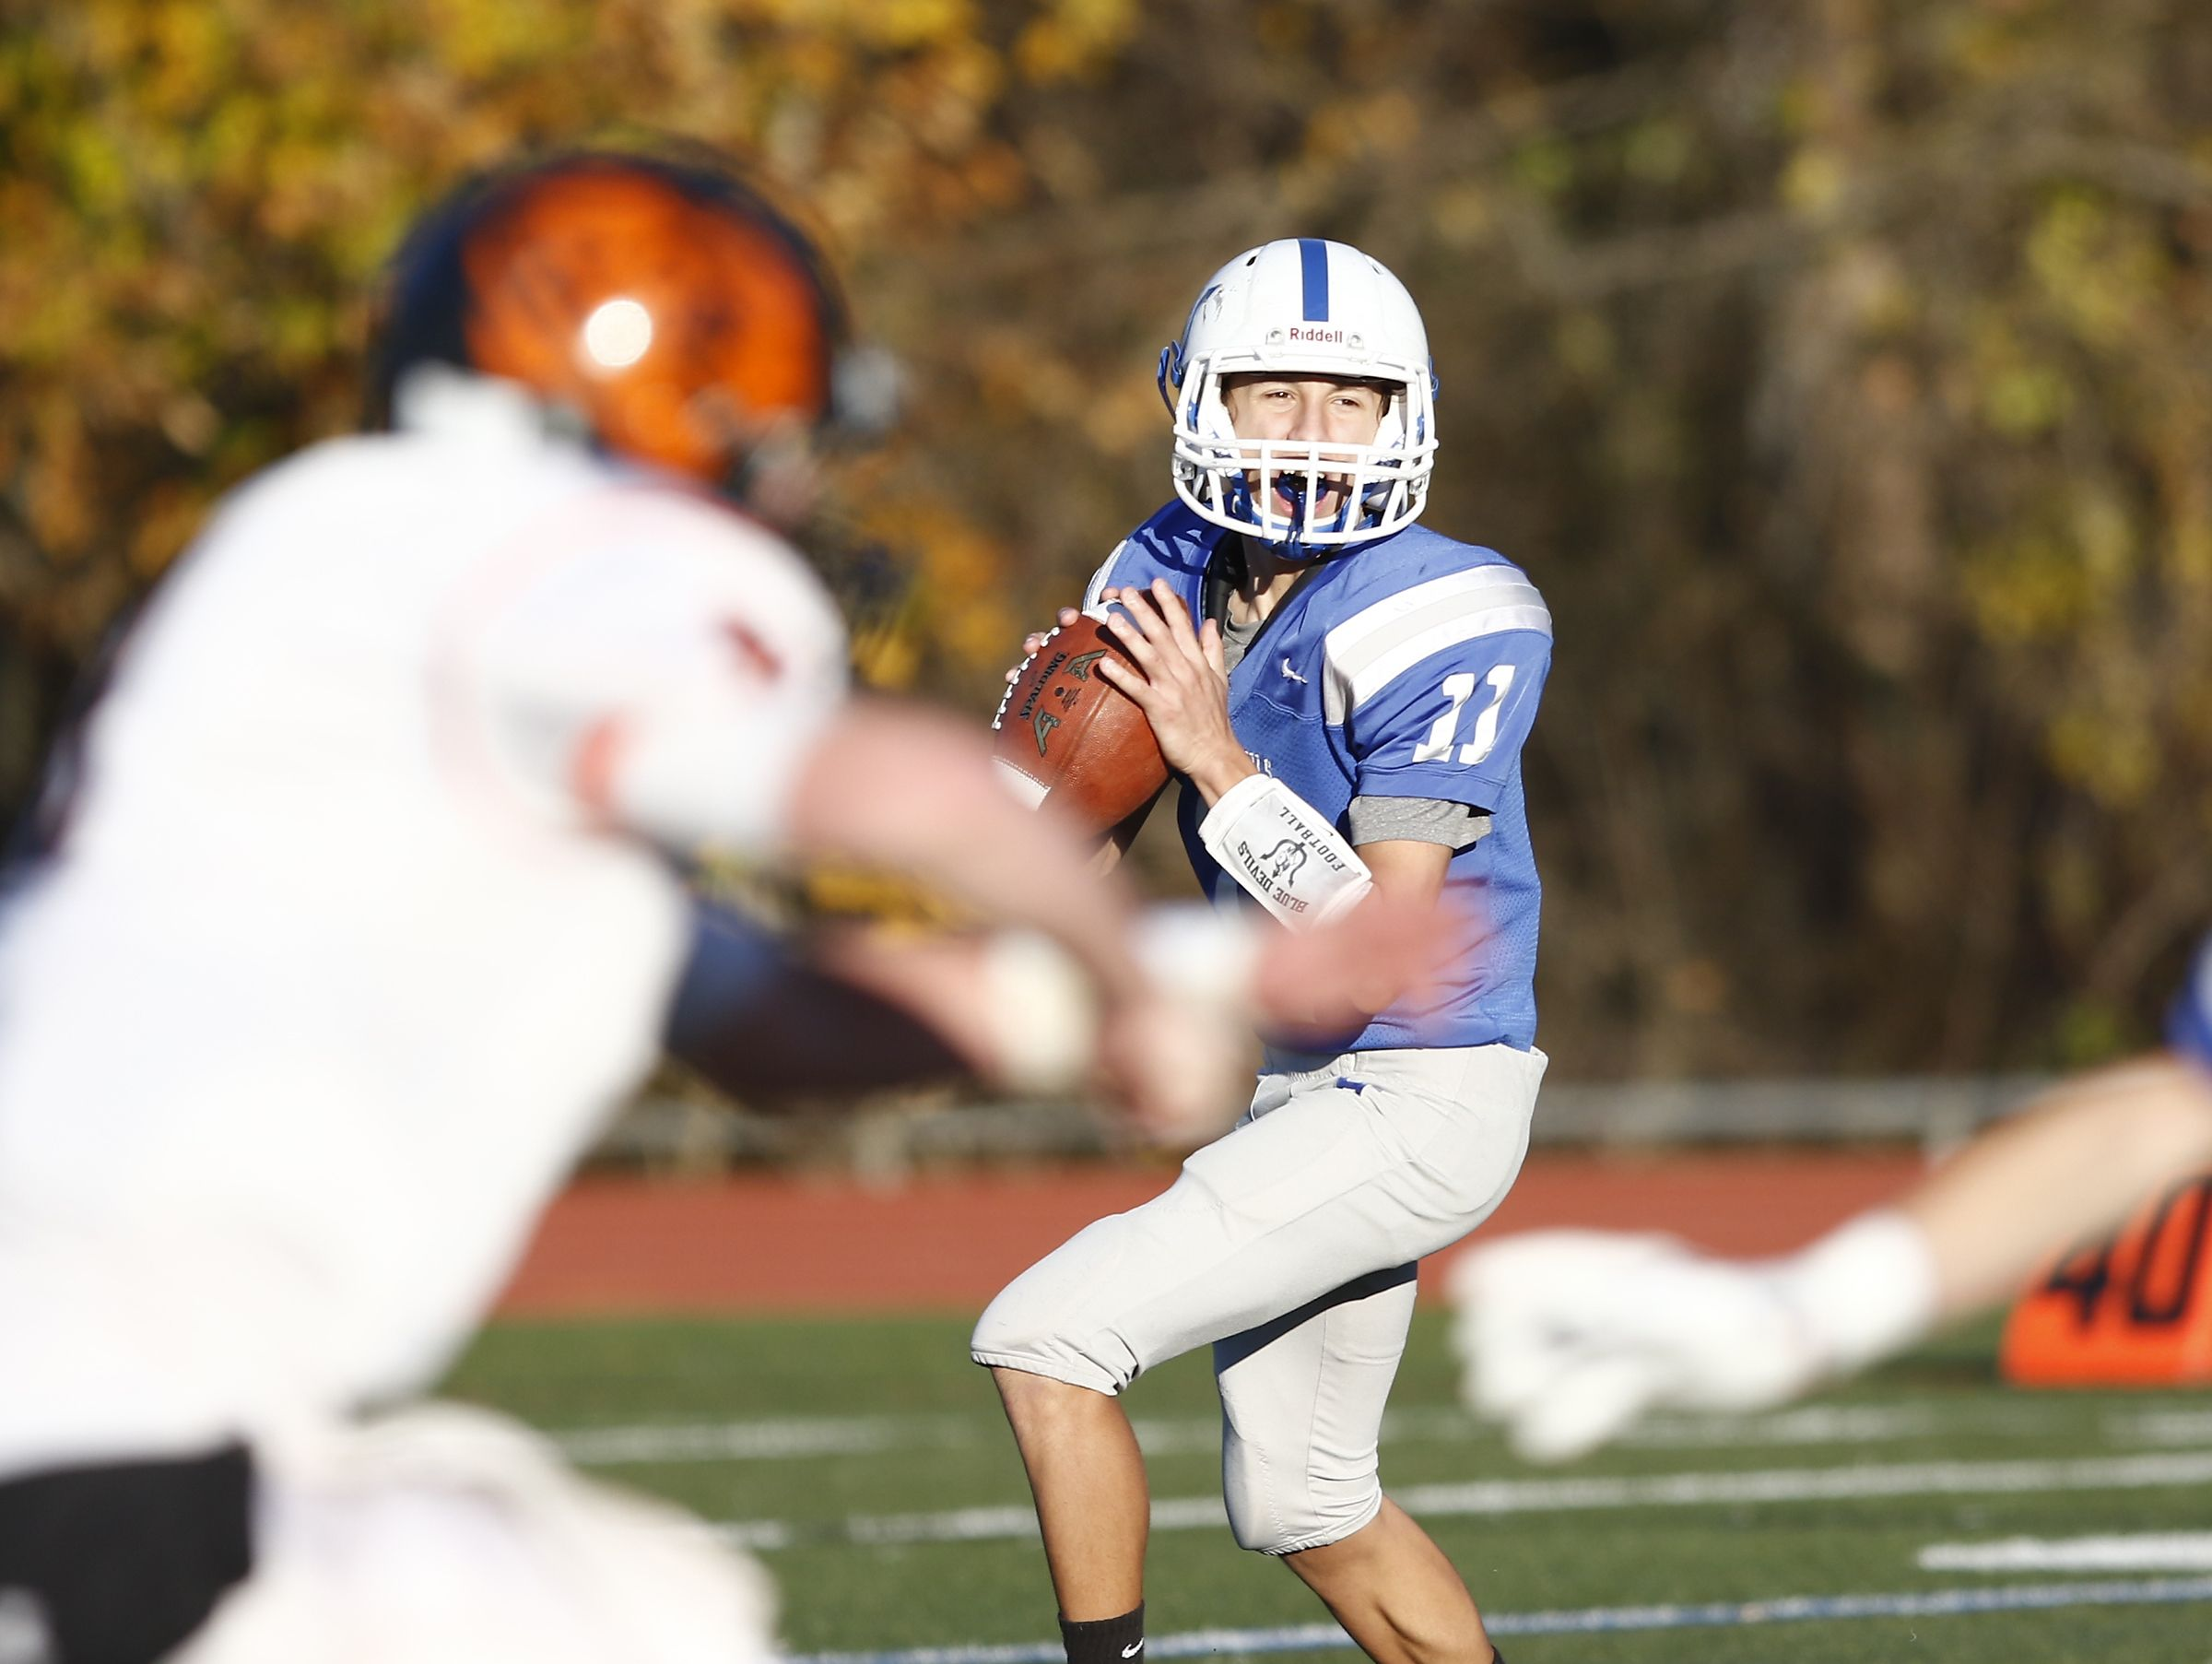 Haldane's Luke Junjulas (11) looks for a pass during their 26-6 win over Tuckahoe 26-6 in the Section 1 Class D championship football game at Mahopac High School on Friday, November 4, 2016.